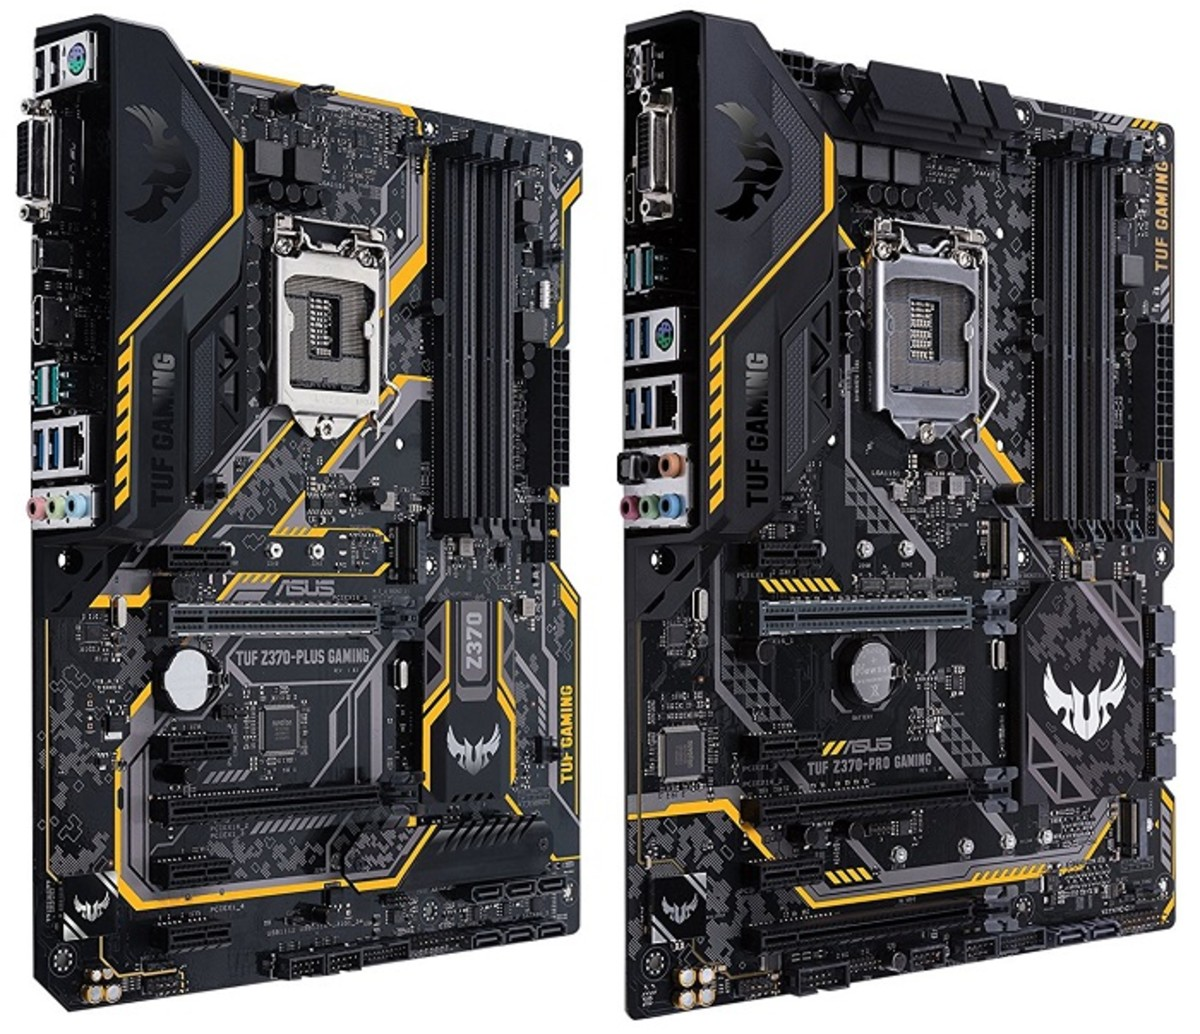 There are two boards very close in price that represent the around $150 price point for Asus. These are the PRO gaming and the Plus Gaming. If you'd like to have one of Asus' Tuf Boards, here are the differences you'll come across between the two.